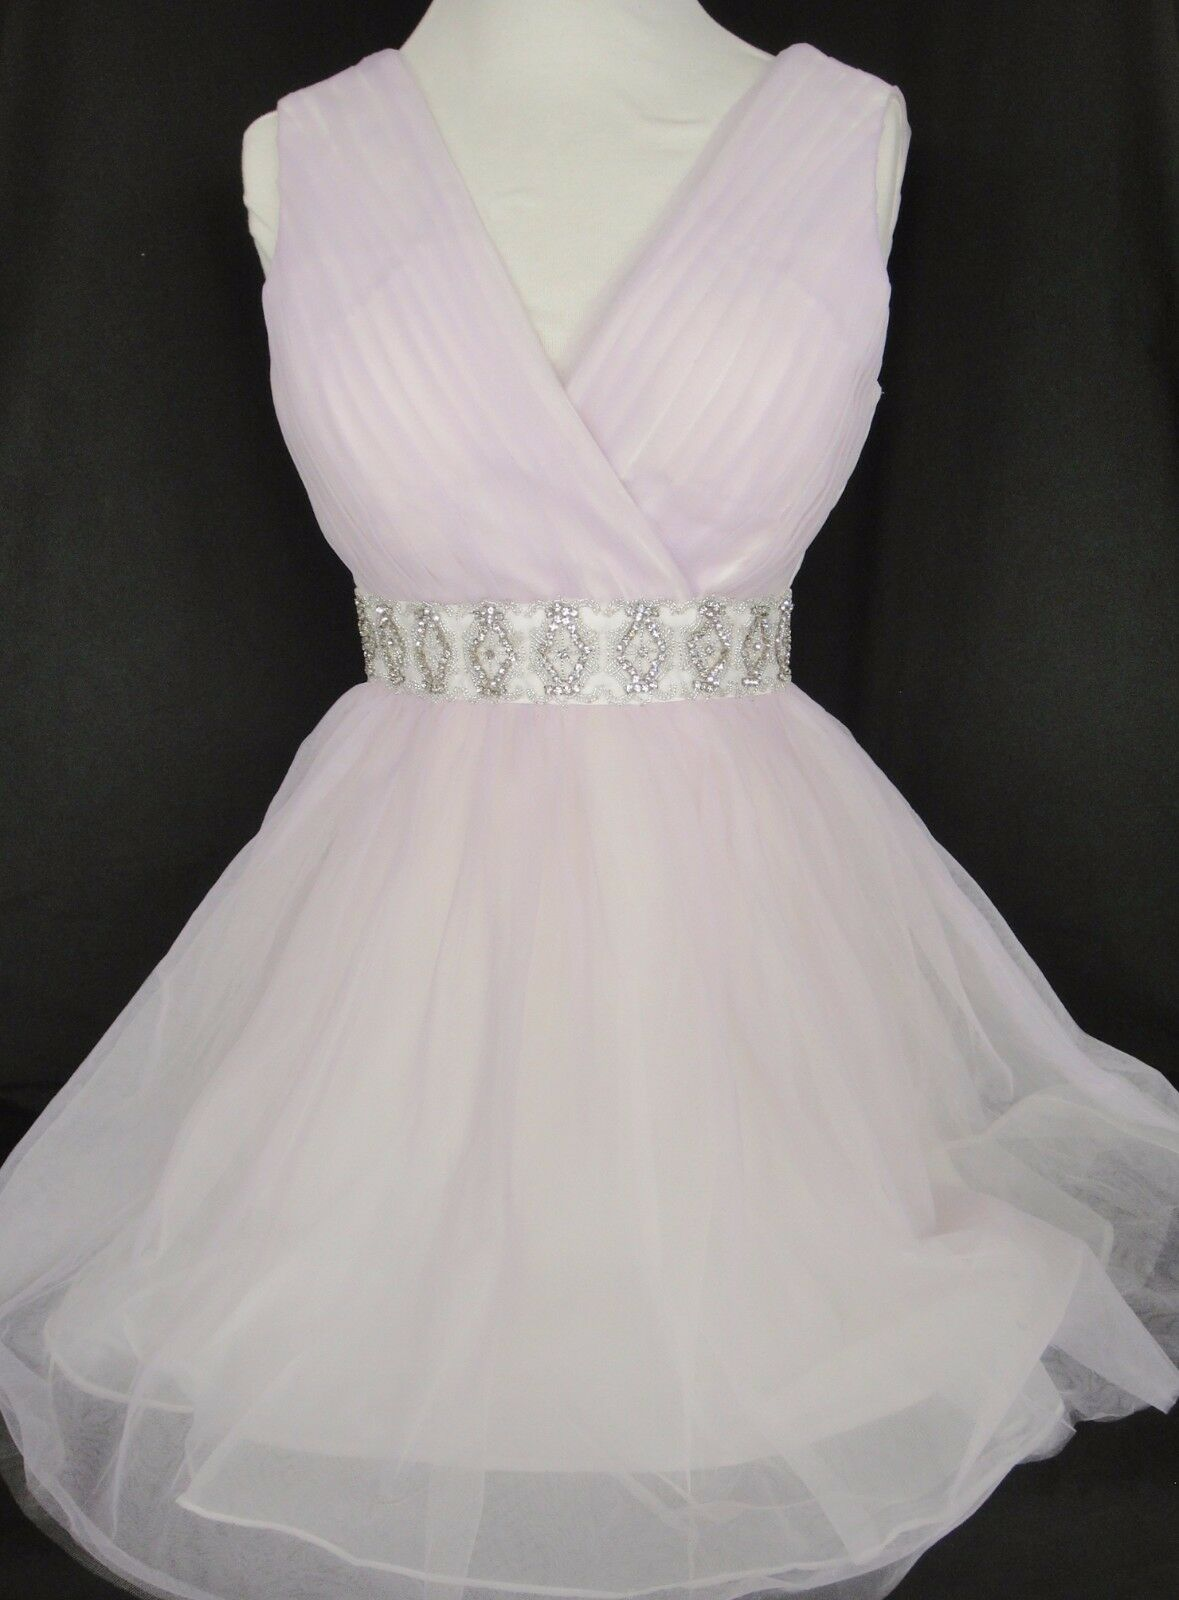 Minuet Short Dress Prom Special Occasion Lavender Tulle Beaded Rhinestone Waist